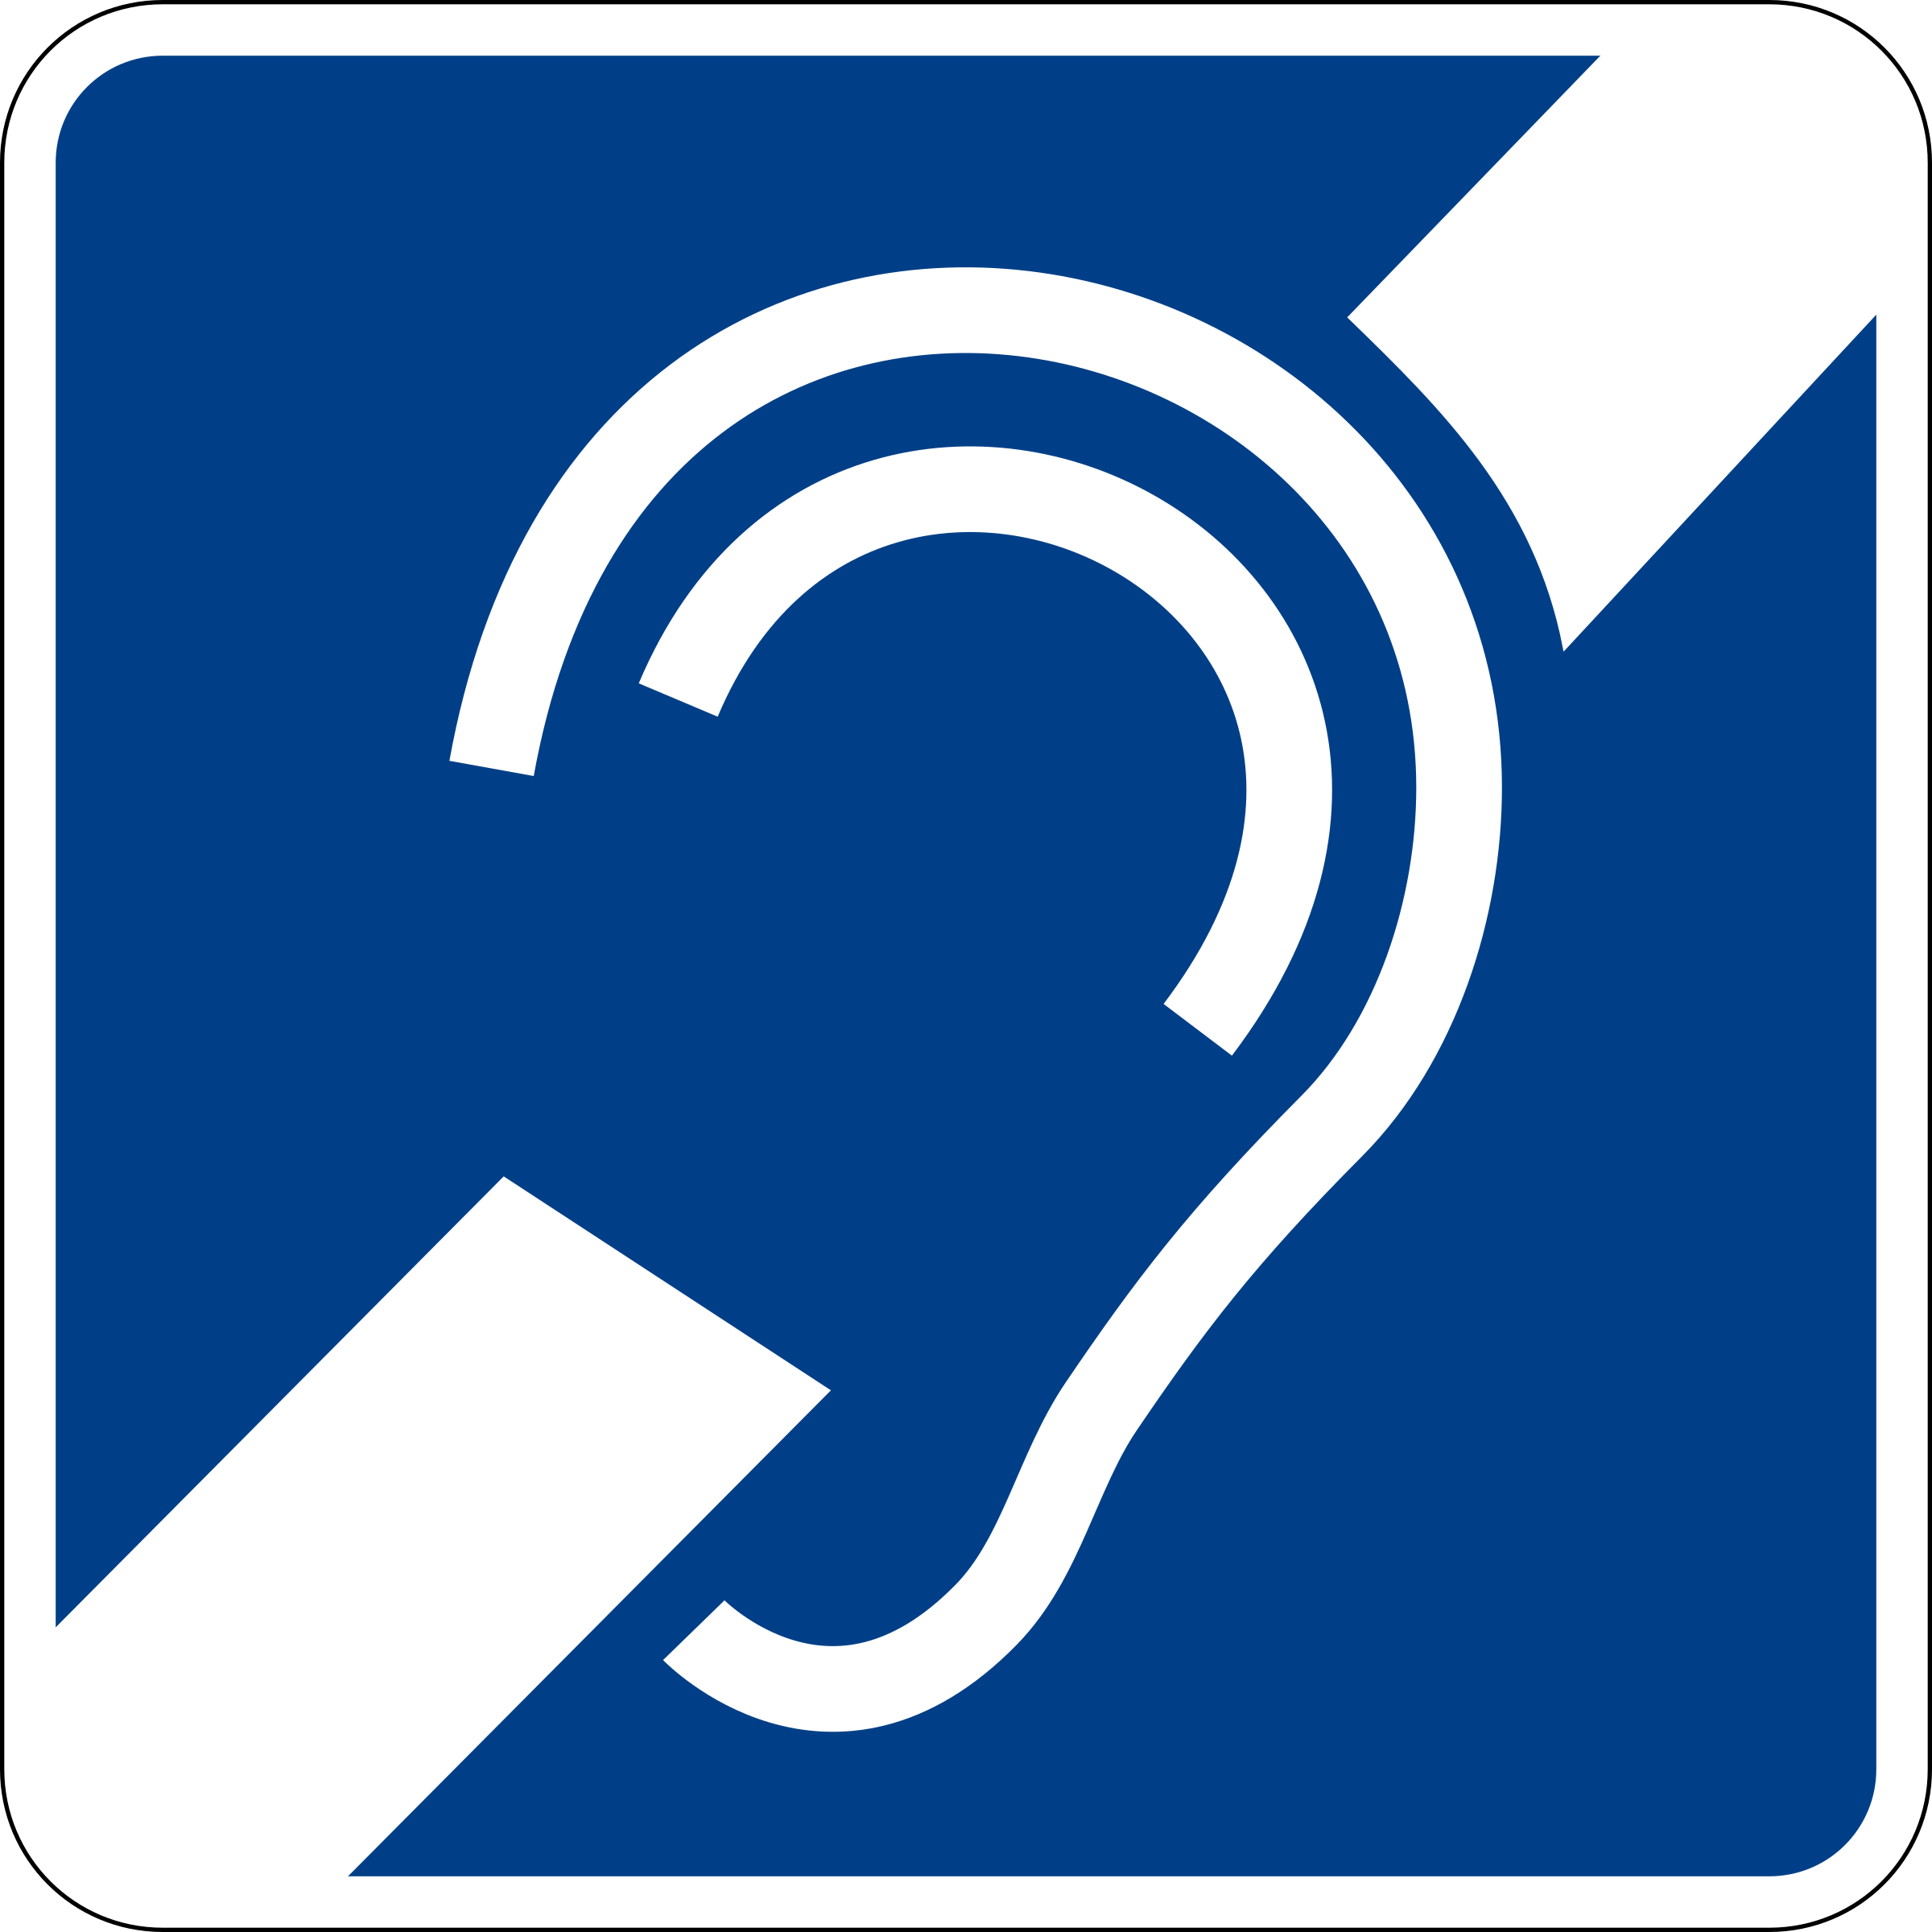 hearing impairment sign by luffy86